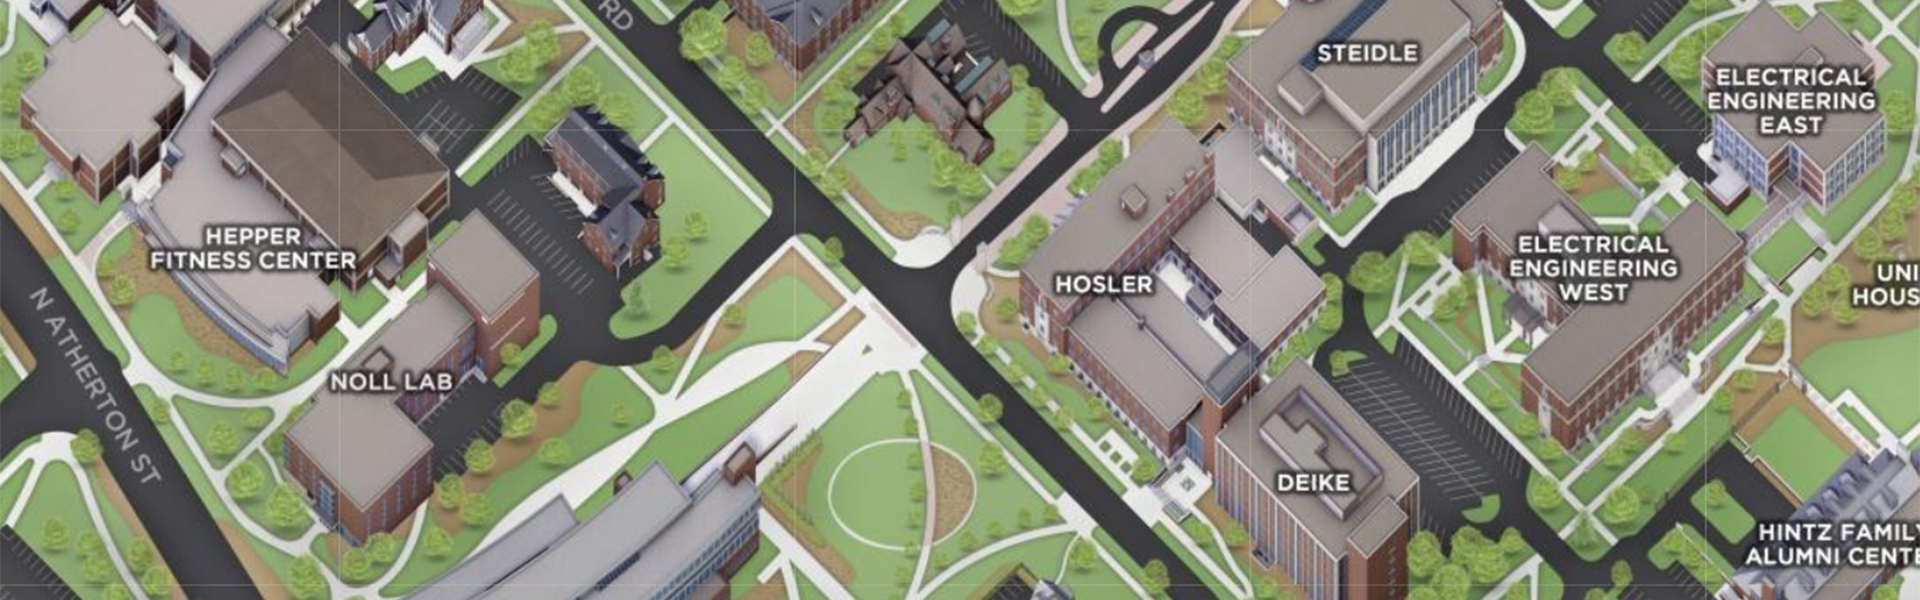 Hosler map